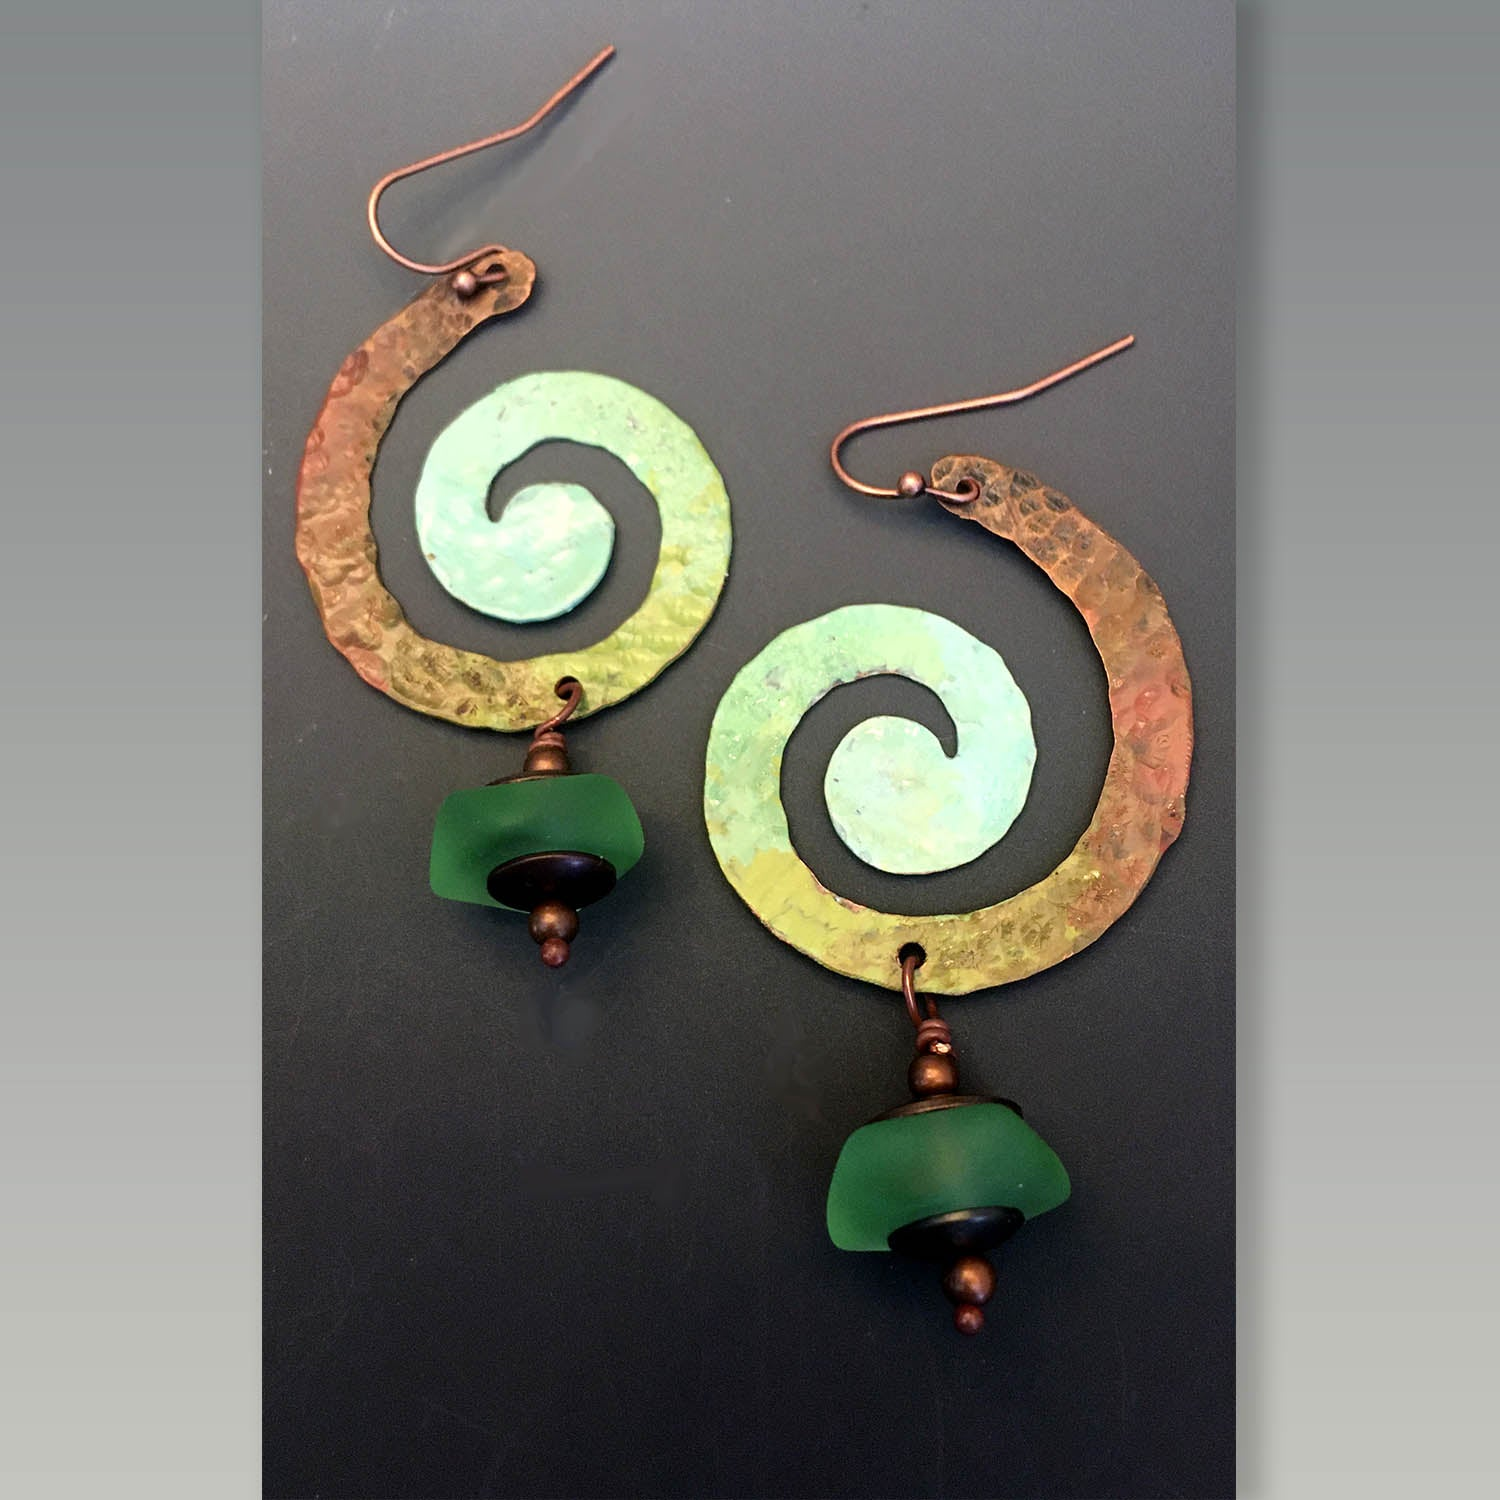 Spiral in Nature earrings